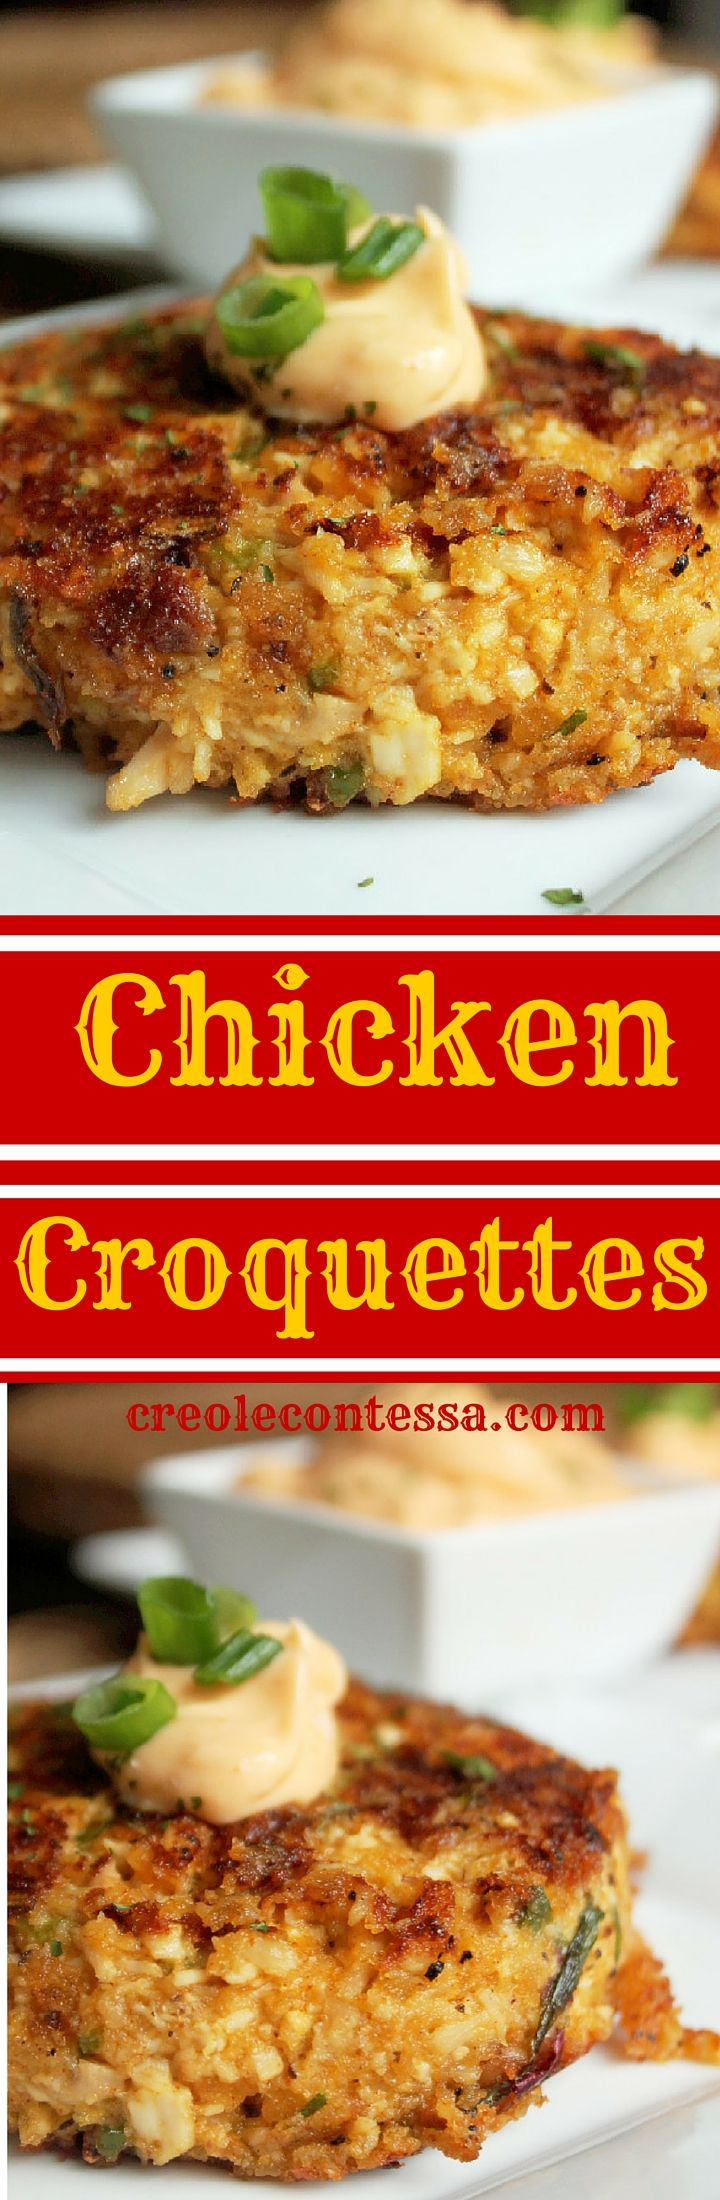 Chicken Croquettes with Spicy Sriracha Mayo-Creole Contessa